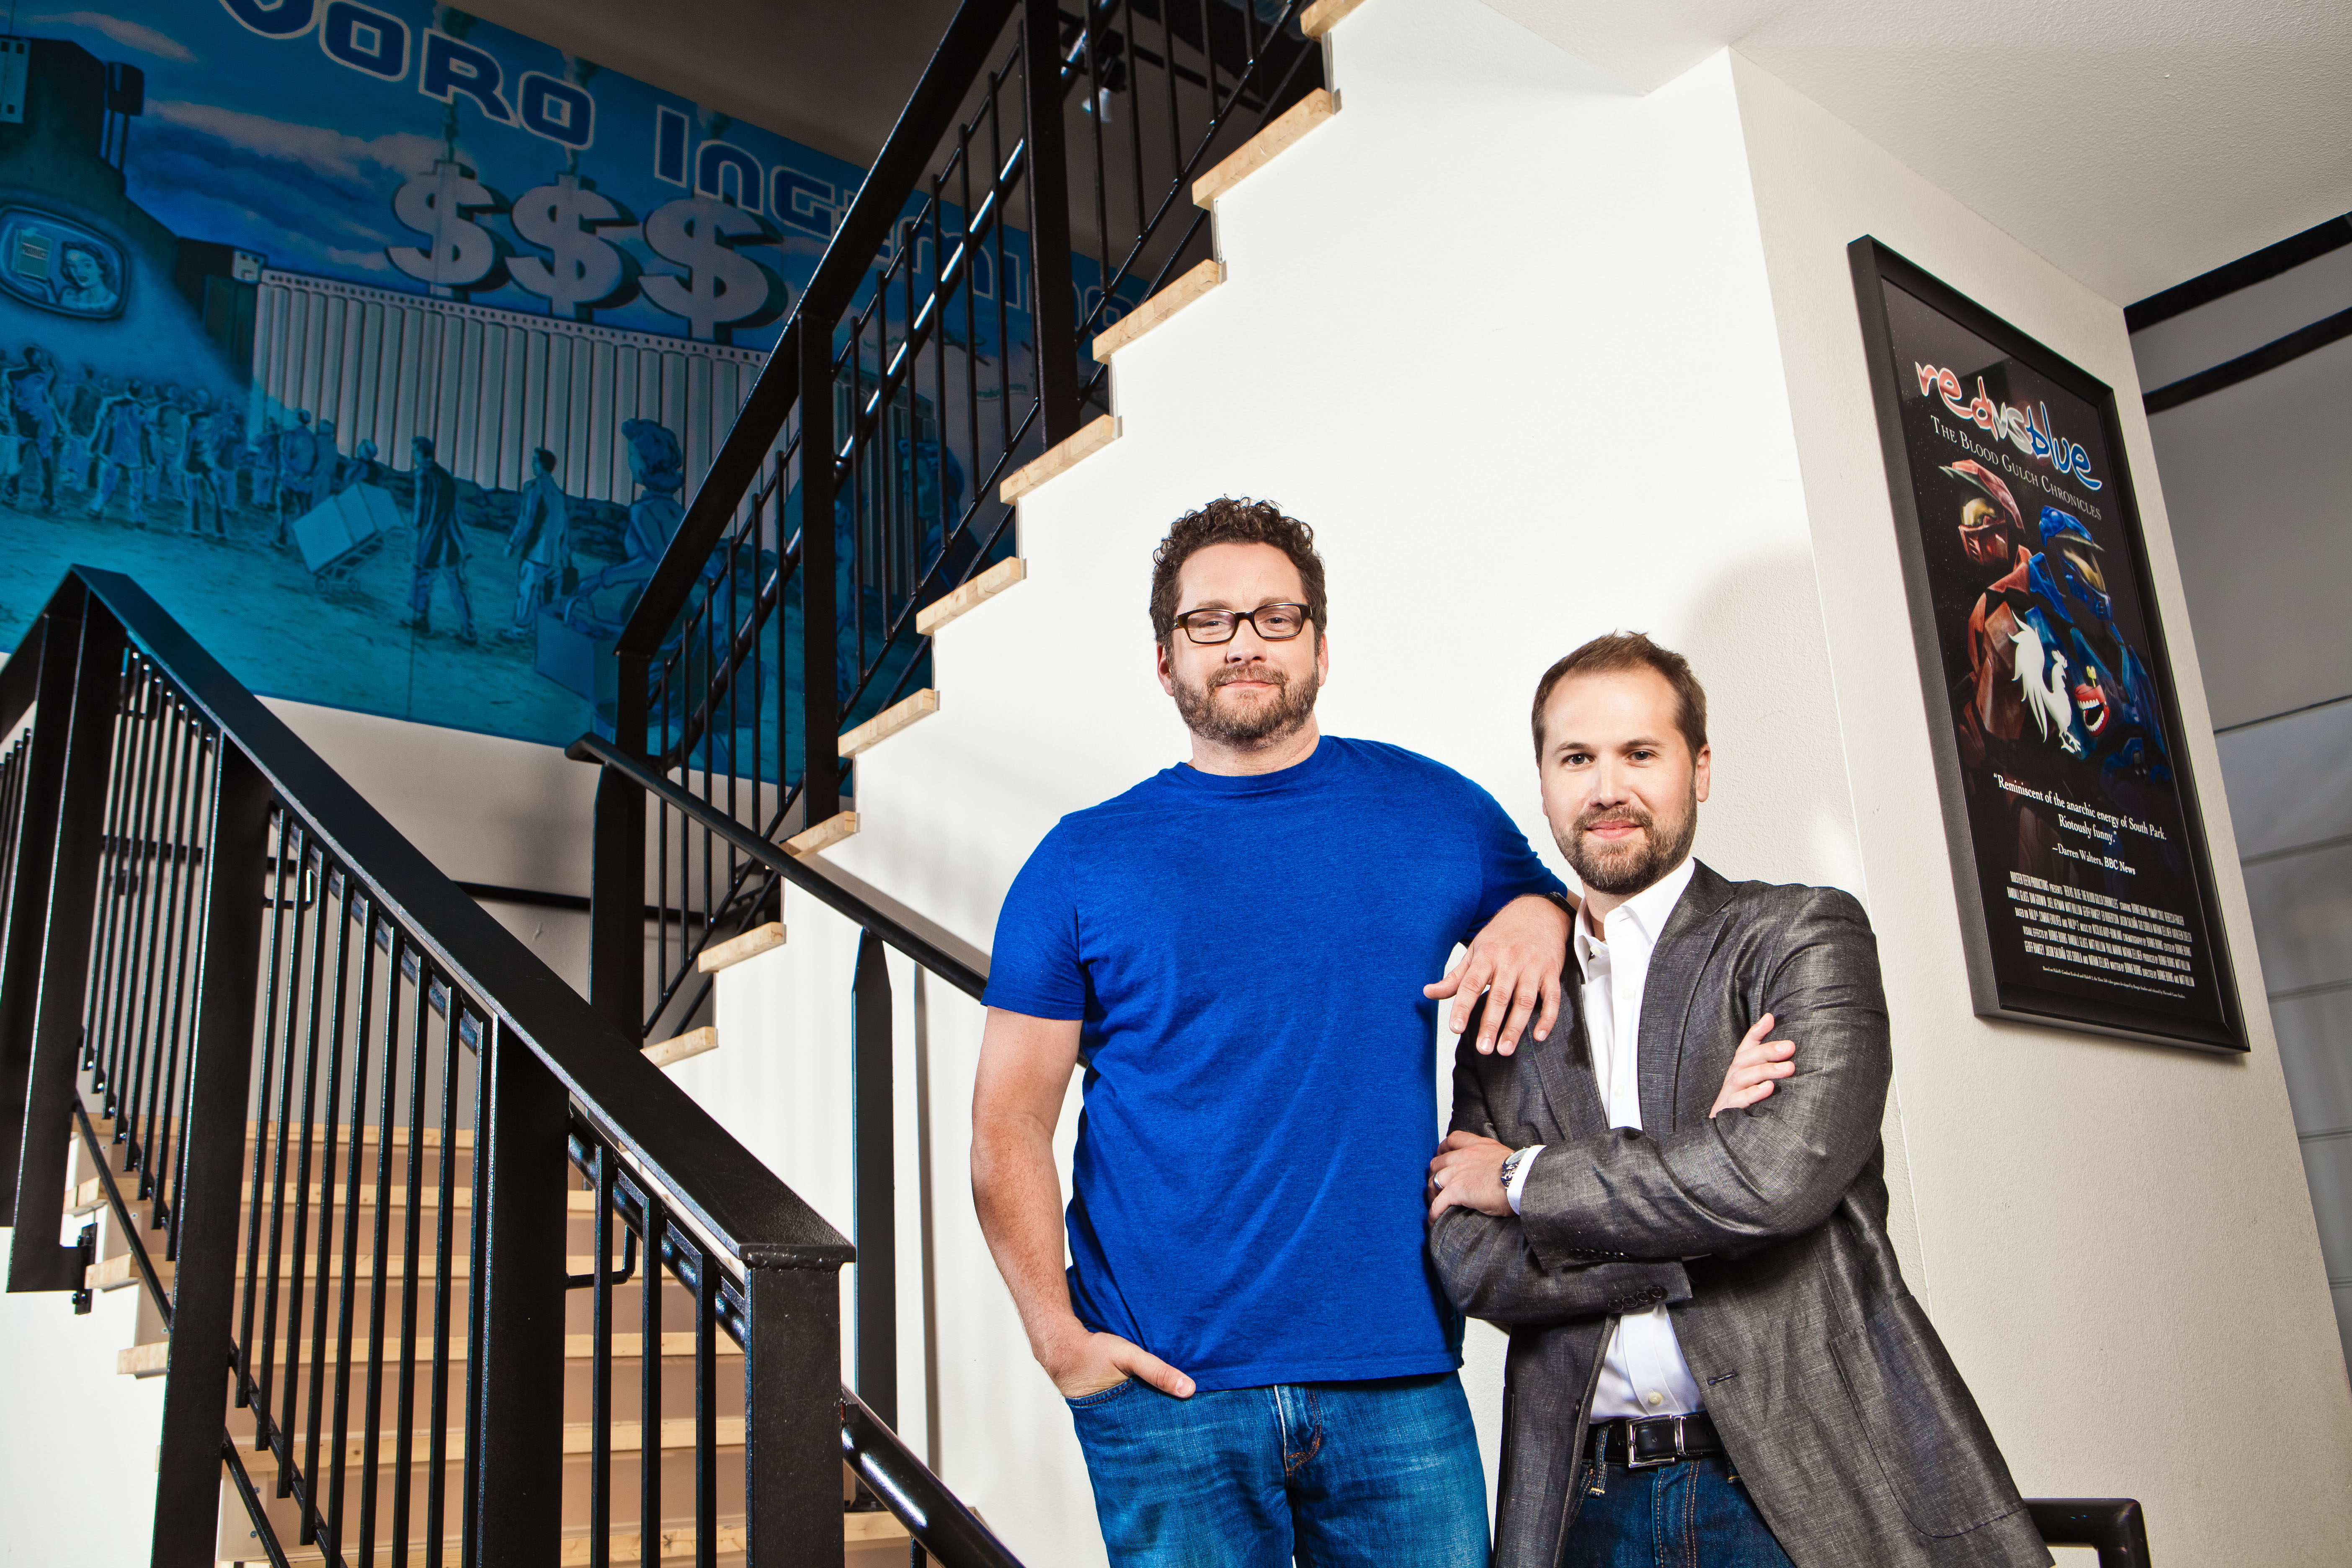 rooster teeth rules the youtube roost siliconhills